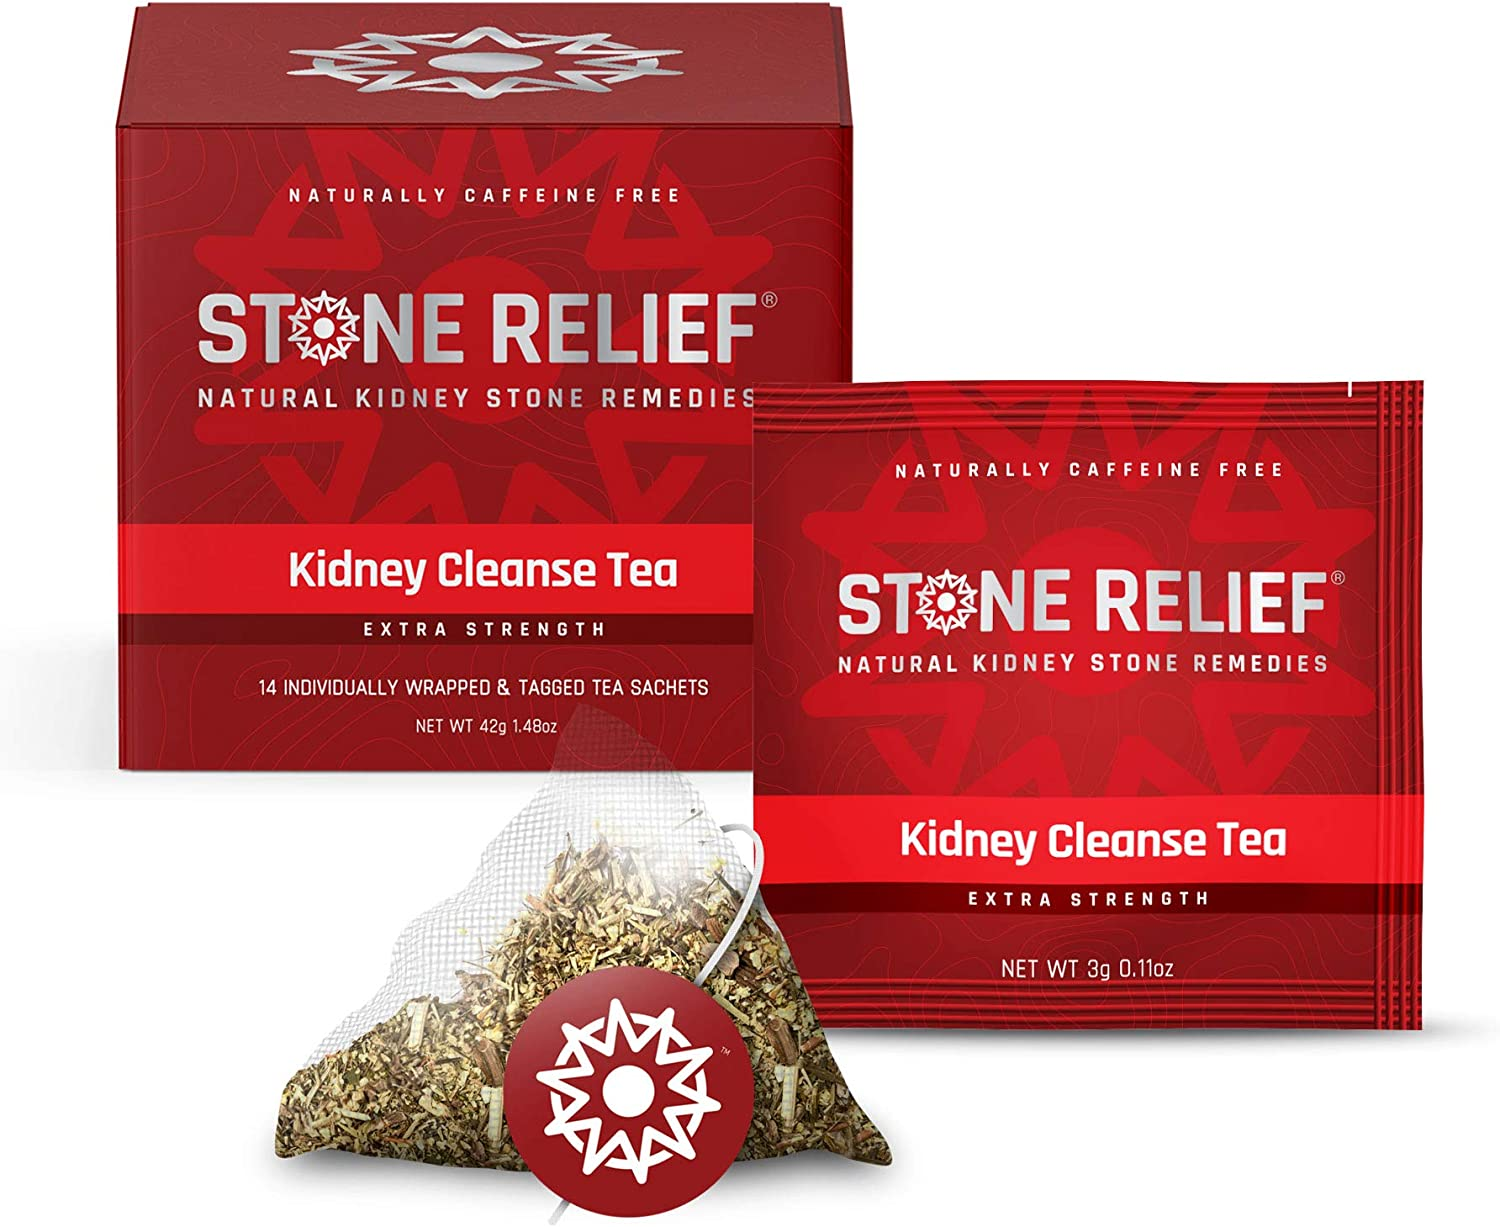 Stone Relief Herbal Tea Extra Strength Naturally Prevent Reduce Relieve Kidney Stones Chanca Piedra Stone Breaker Dandelion Root Lemon Amazon Ca Home Kitchen